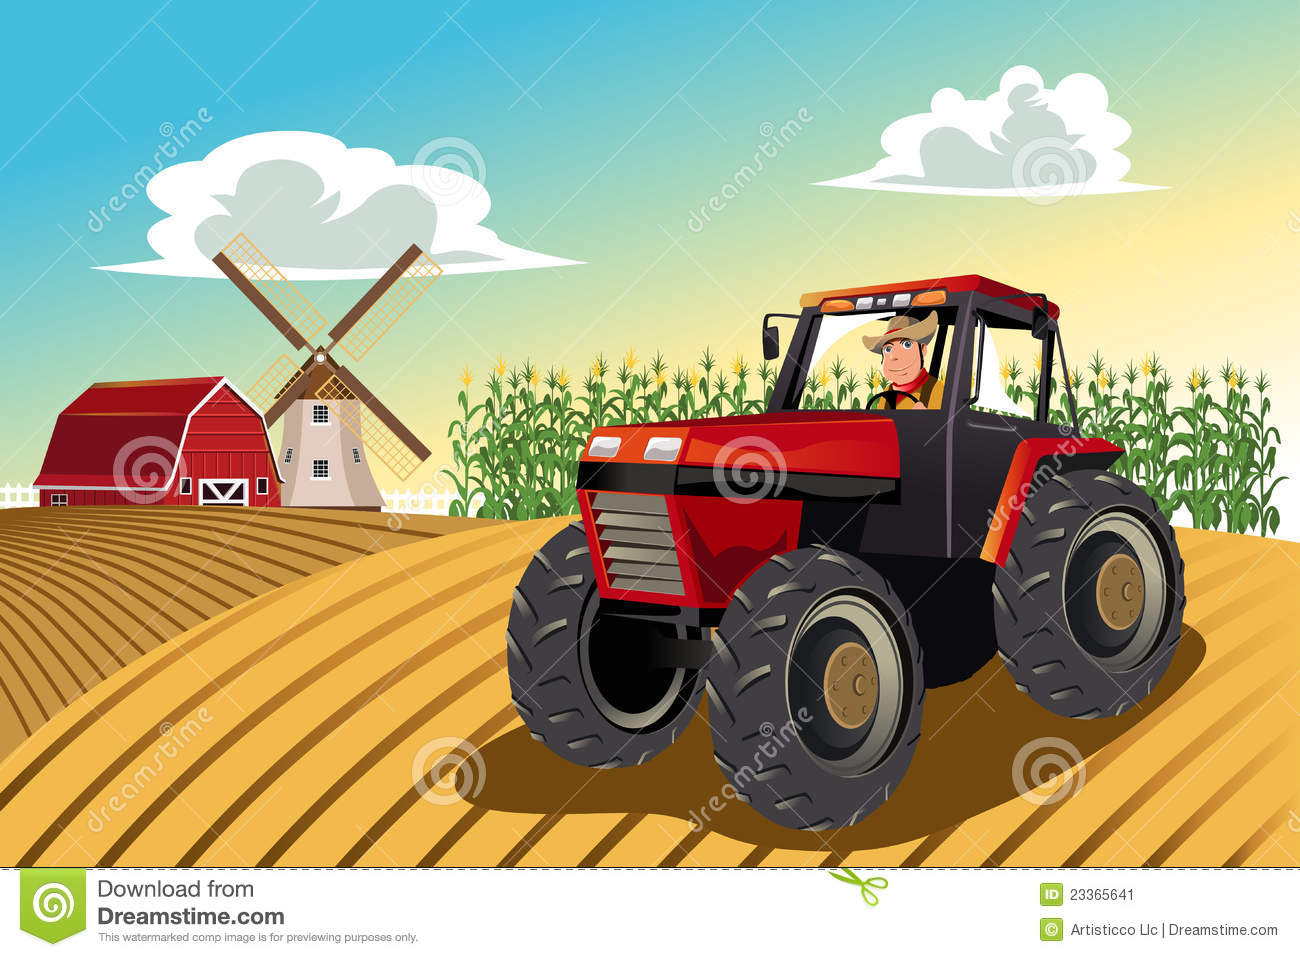 Farmer Riding A Tractor Stock Image - Image: 23365641